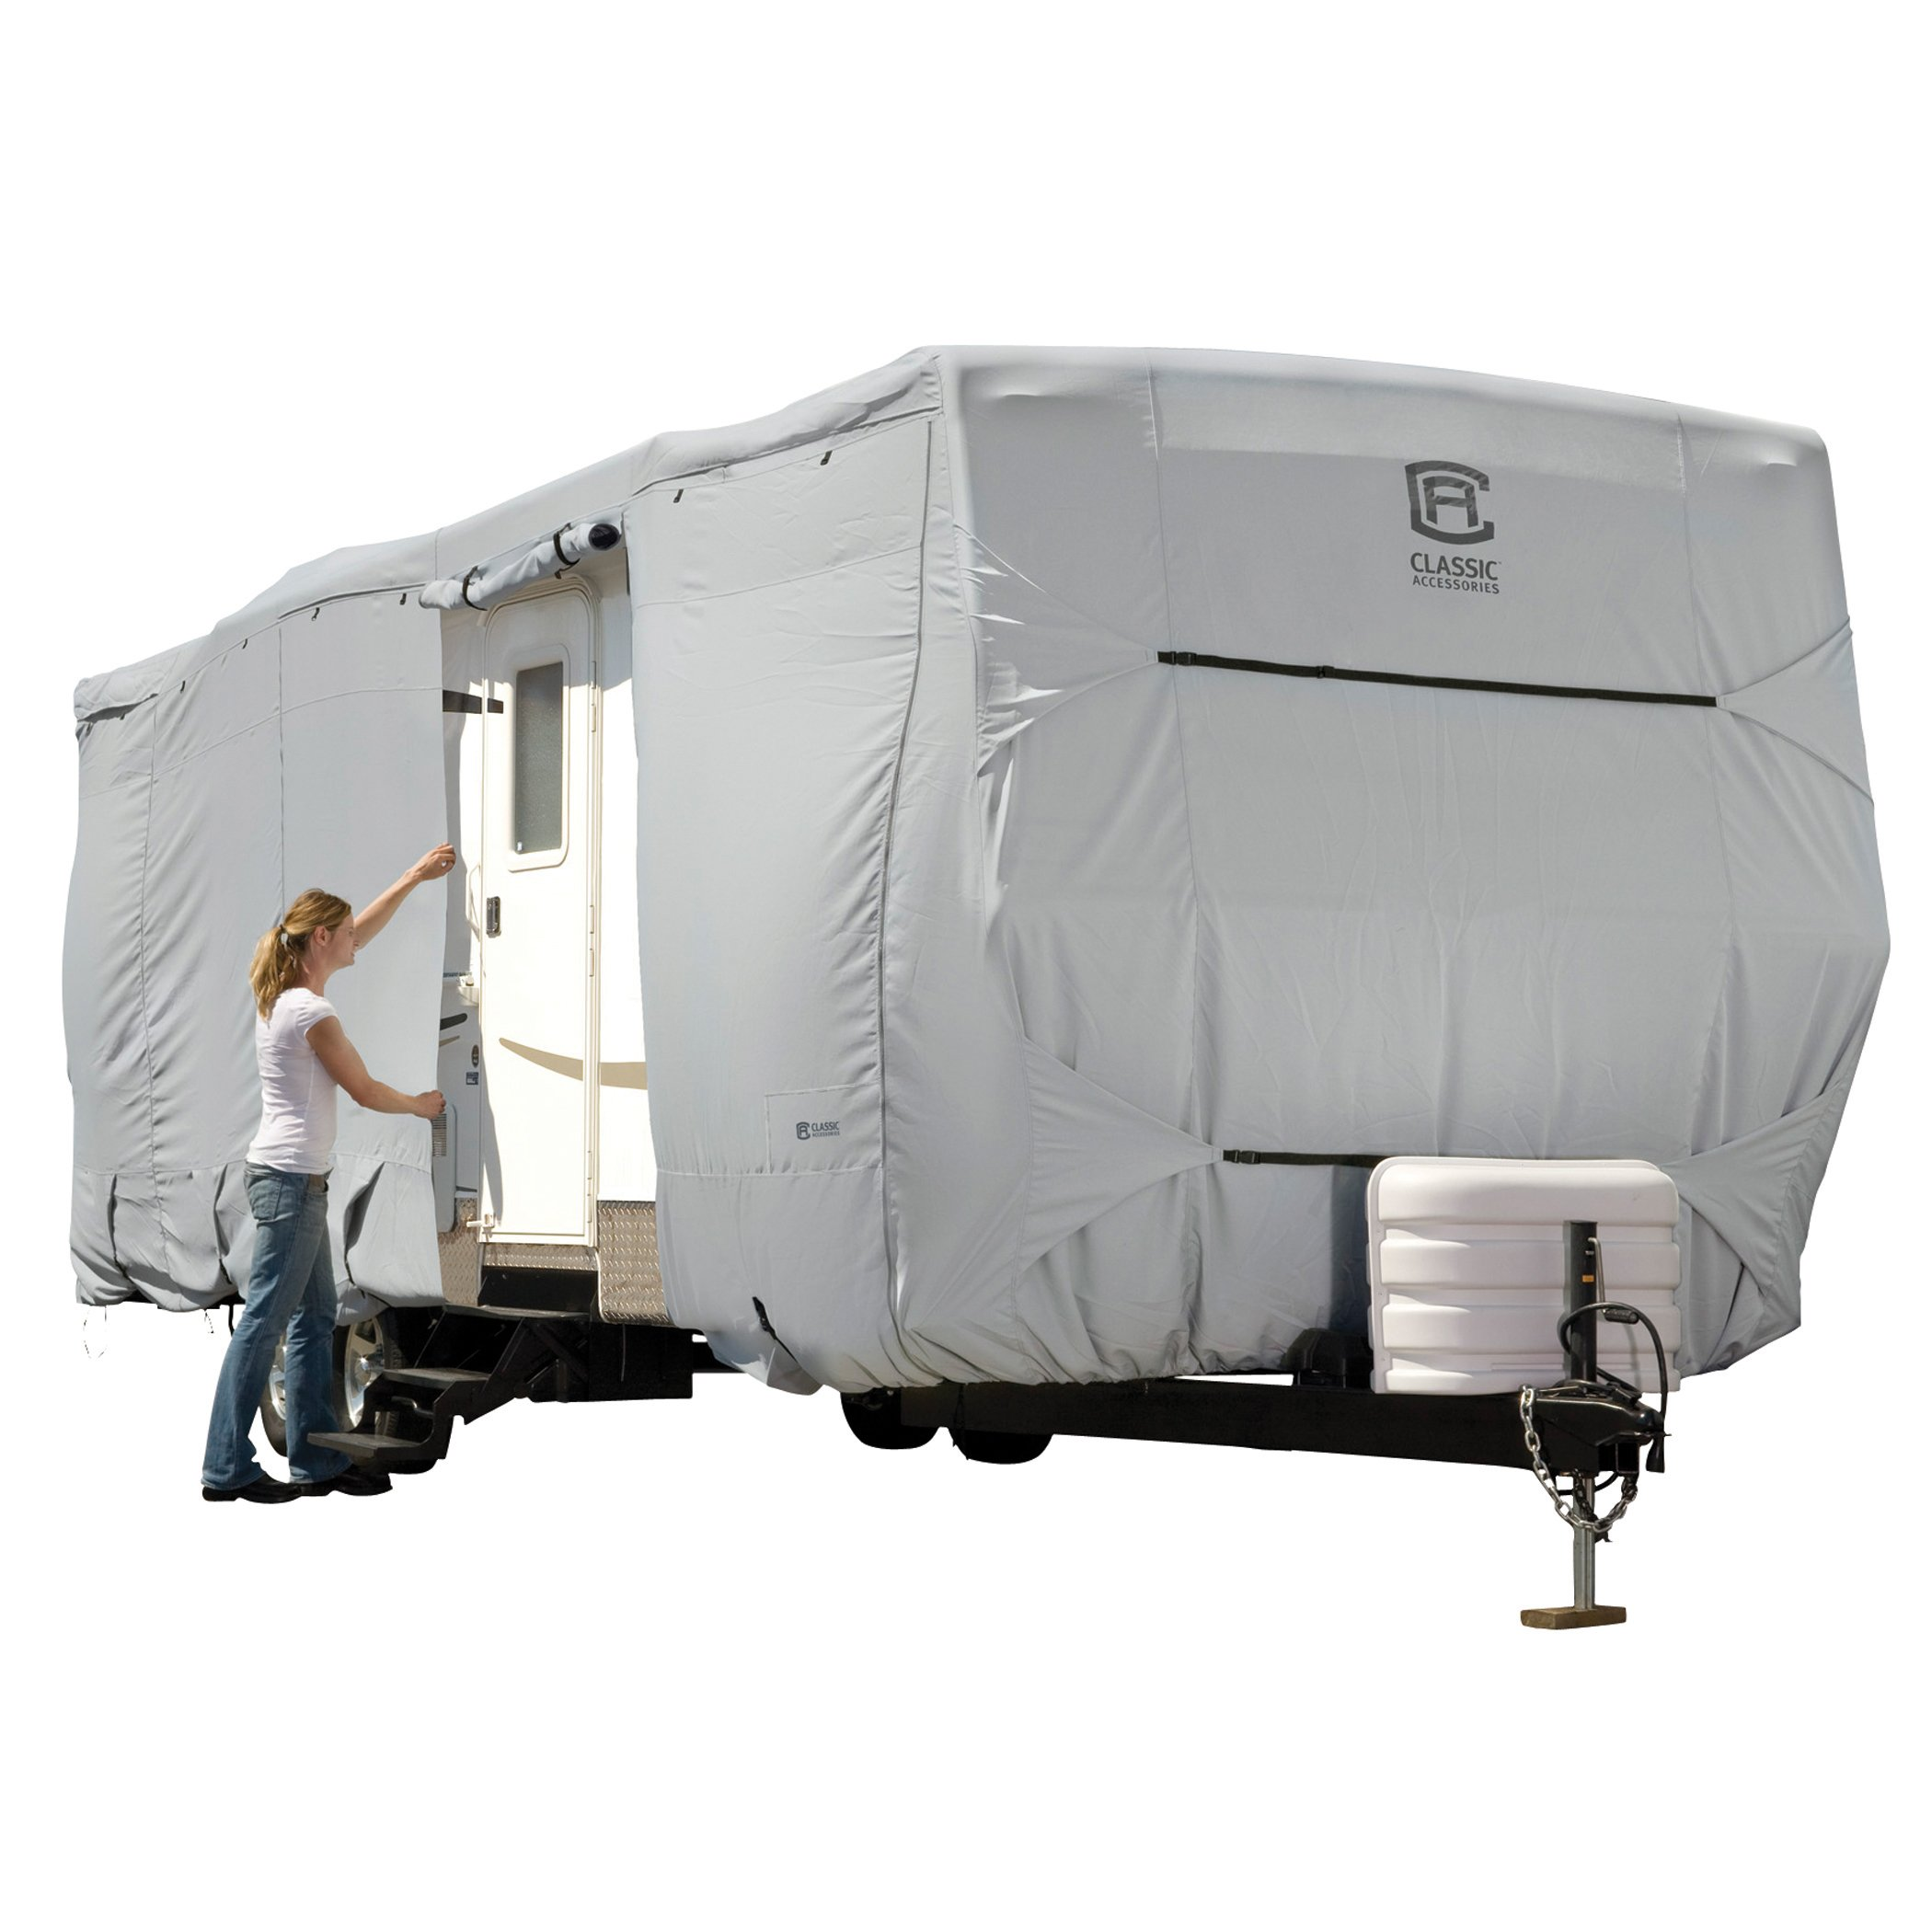 Classic Accessories OverDrive PermaPro Heavy Duty Cover for 20' to 22' Travel Trailers